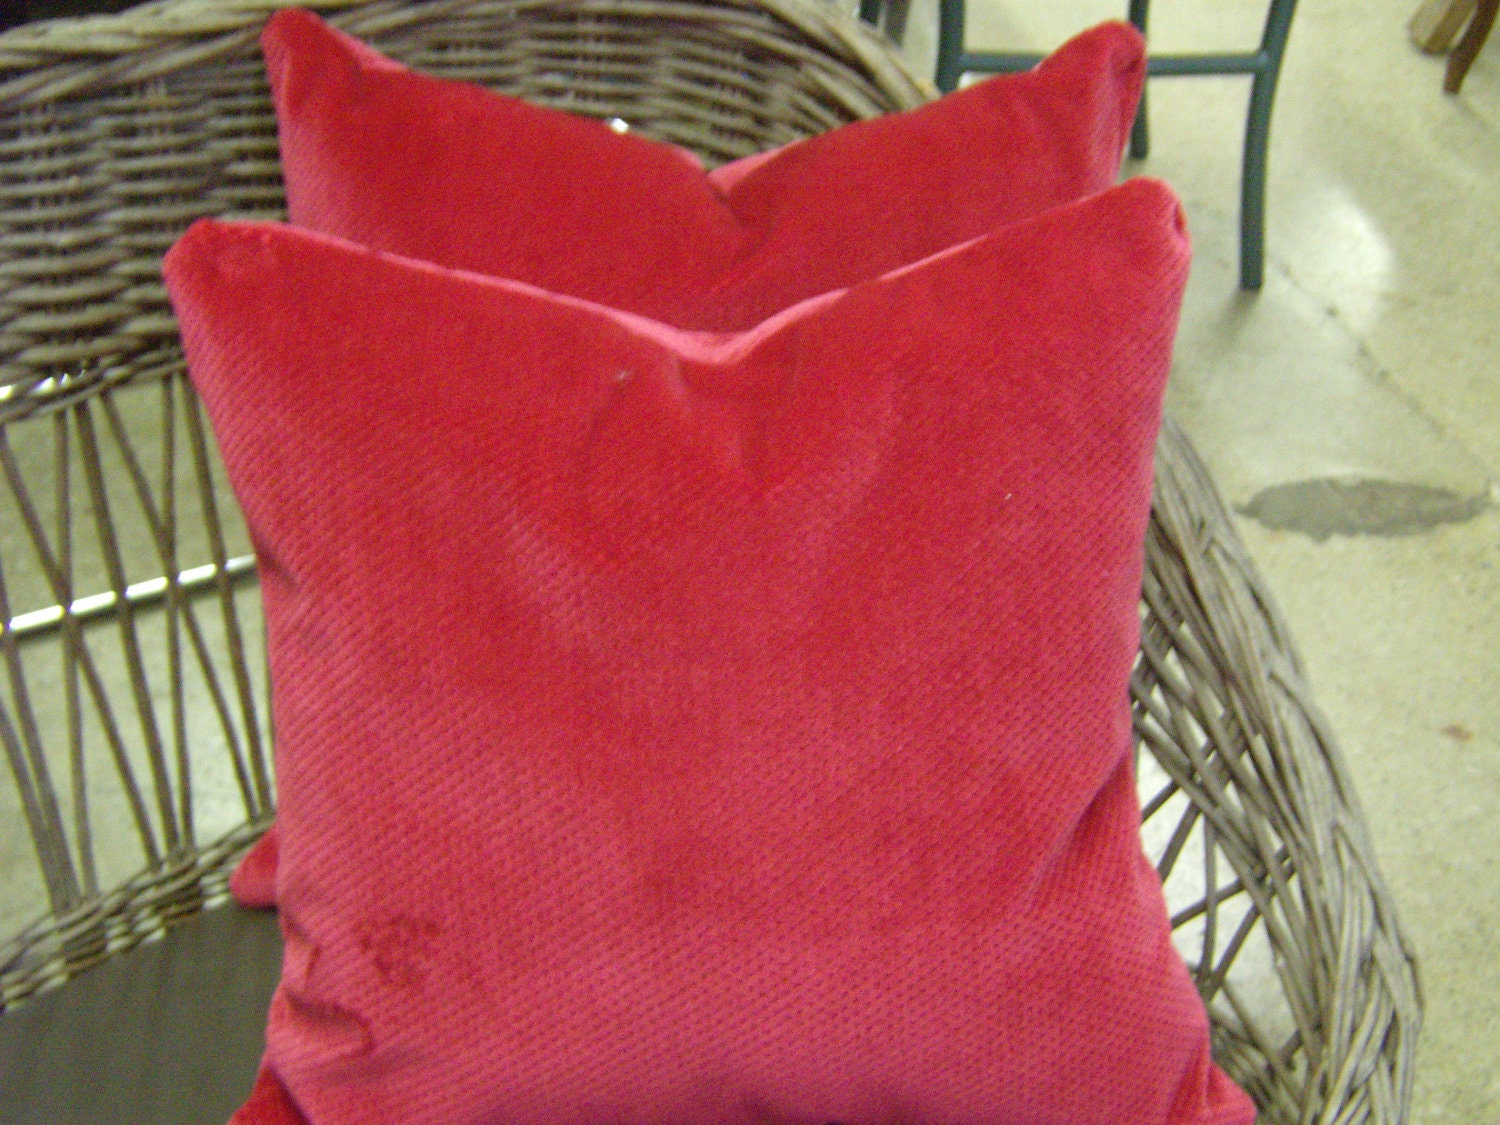 Set of Hot Pink Textured Velvet Pillows